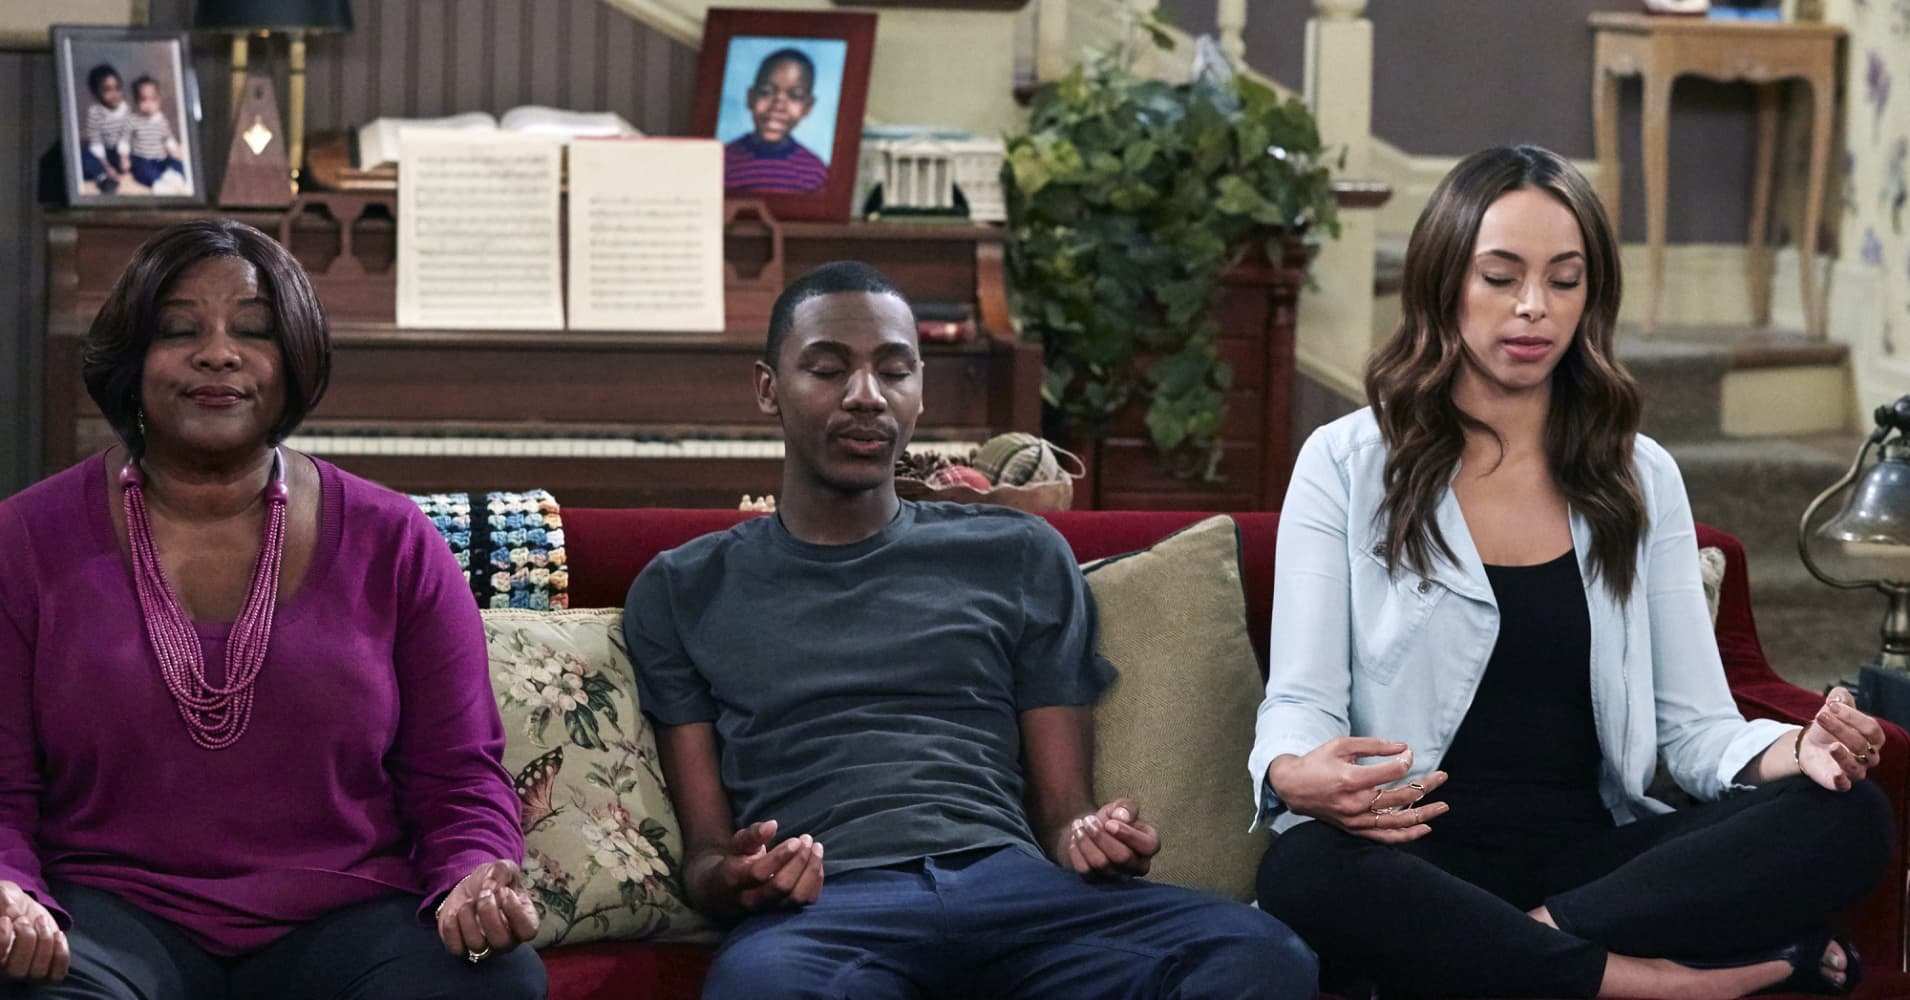 Loretta Devine as Cynthia Carmichael, Jerrod Carmichael as Jerrod, Amber Stevens West as Maxine North on NBC's 'The Carmichael Show .'